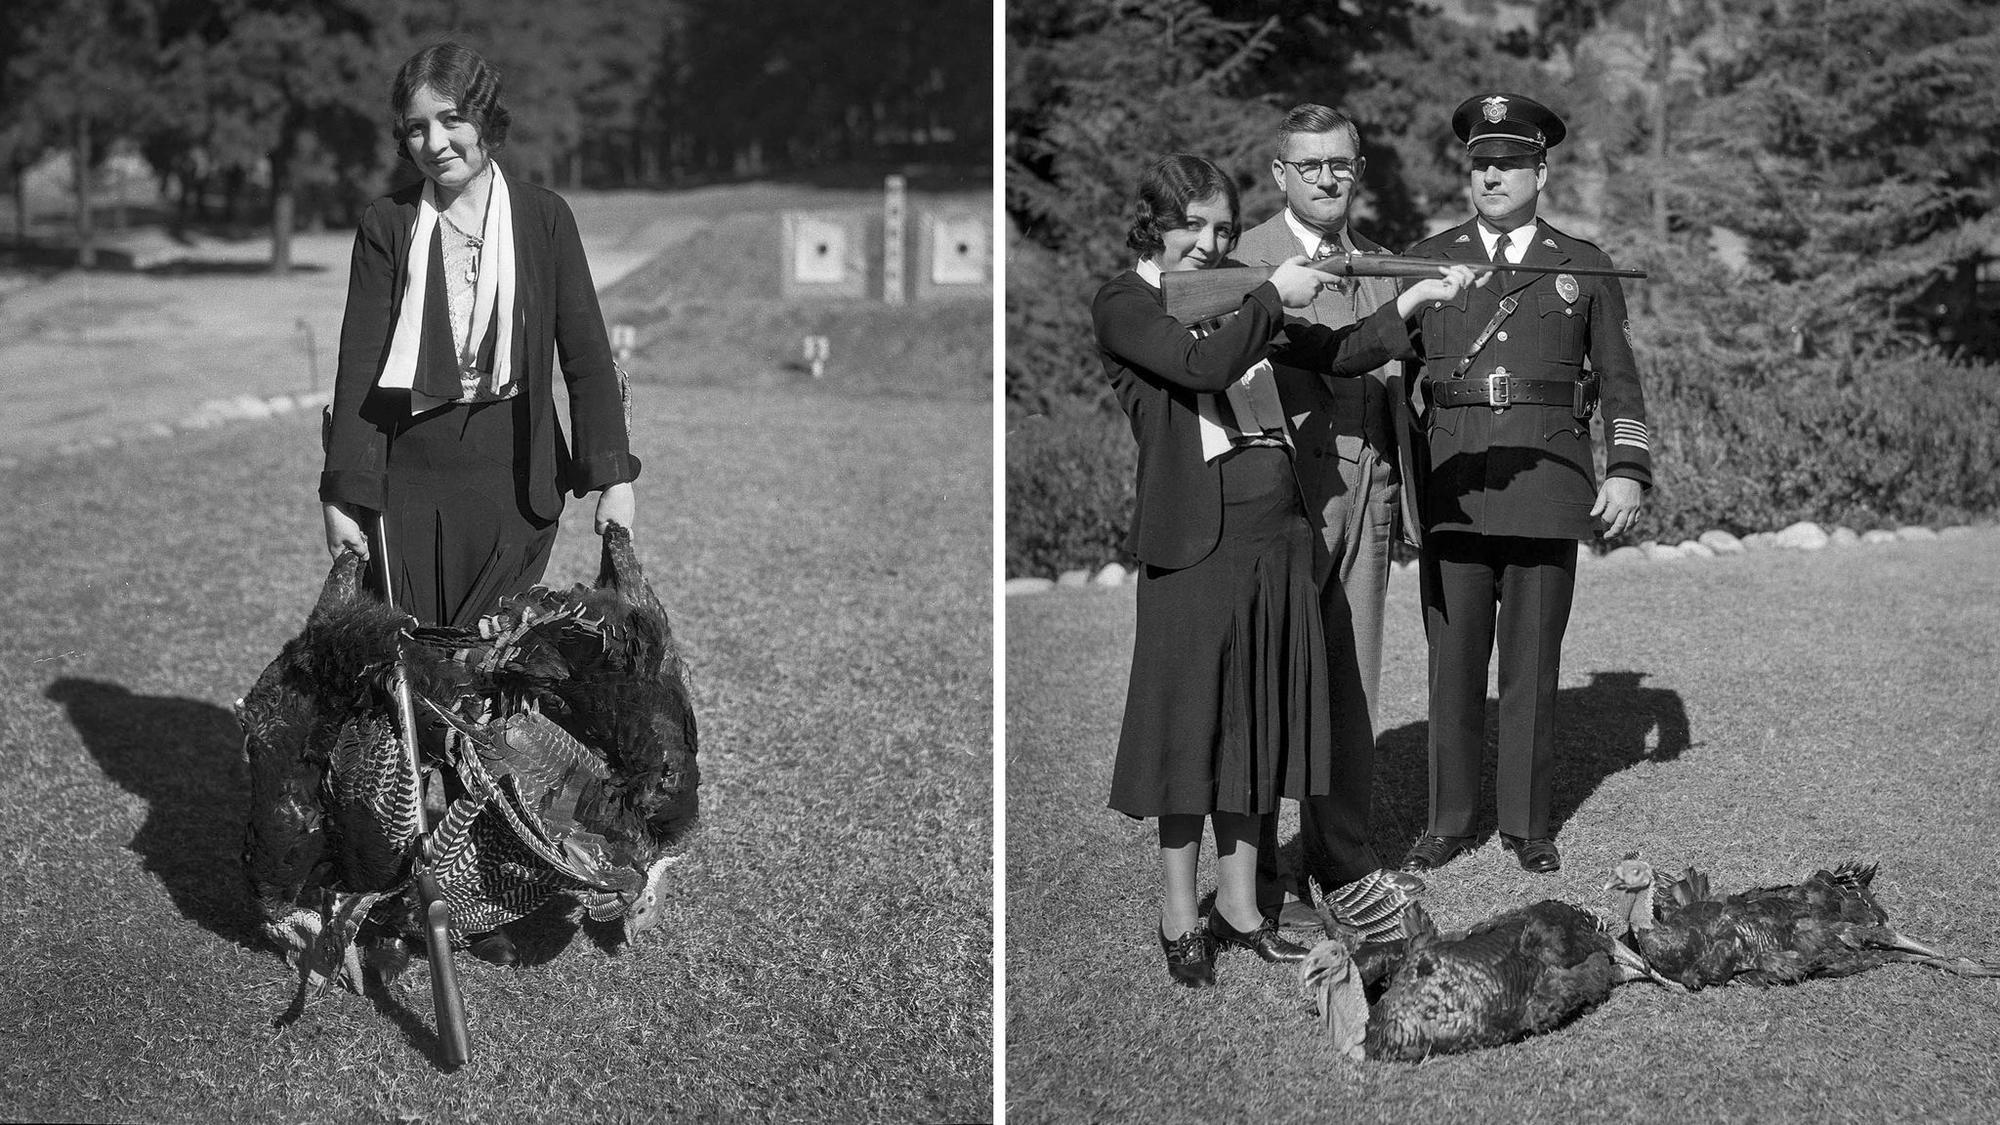 From the Archives: Turkey prizes at 1932 shooting contests